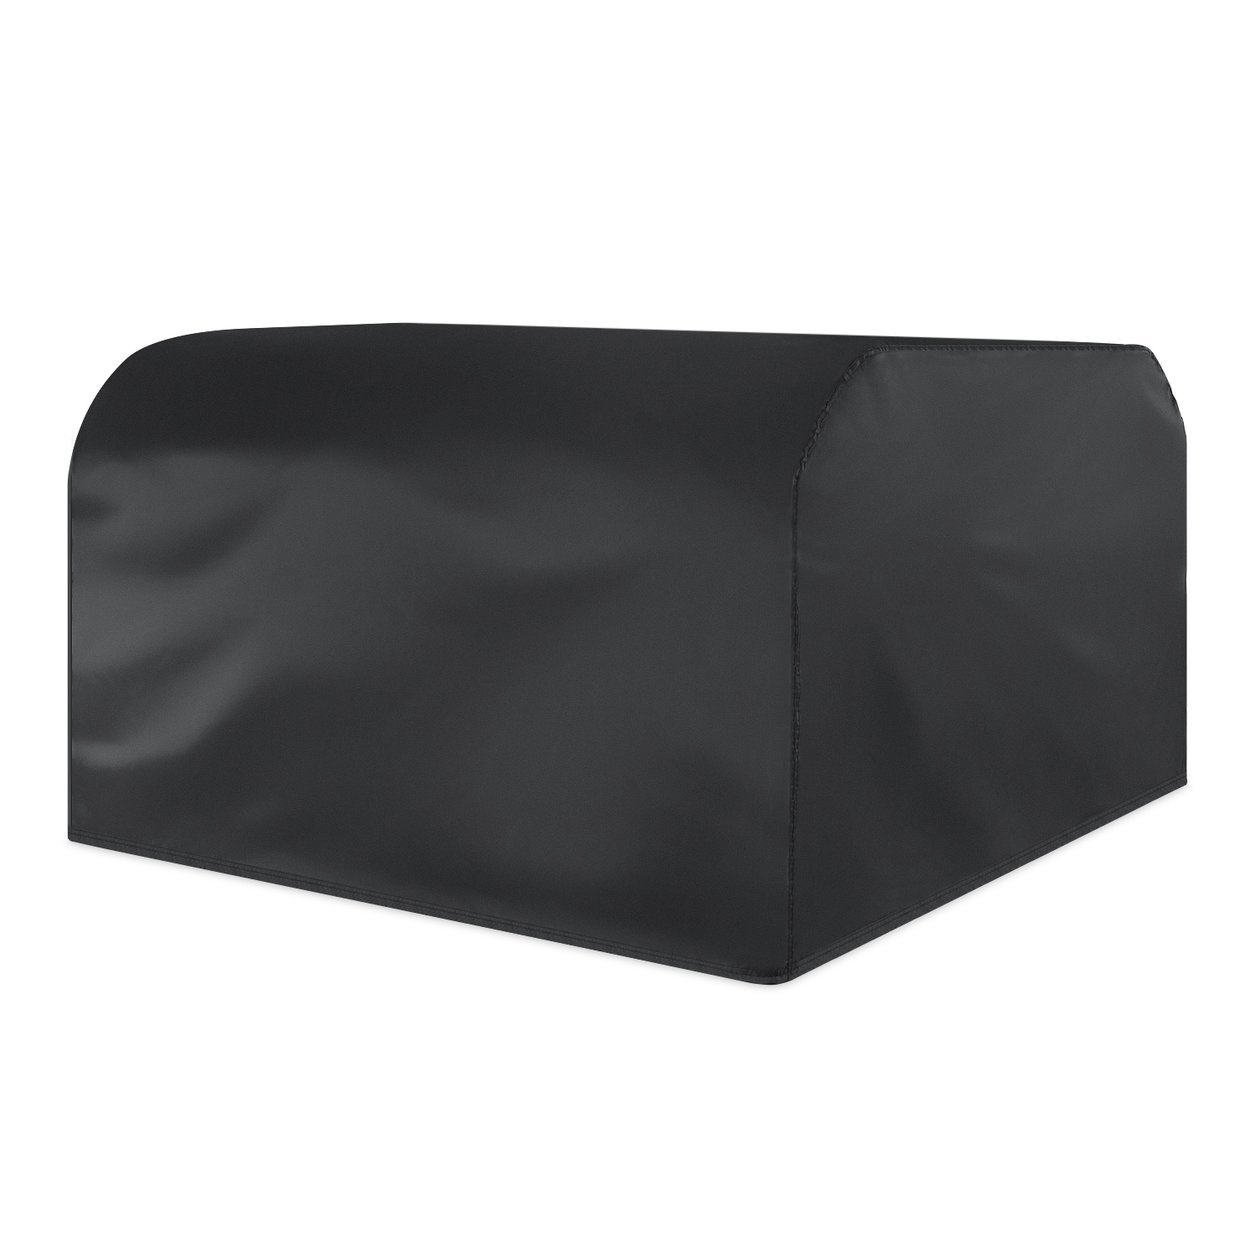 Dailyinshop Universal 210D Oxford Cloth Outdoor Dustproof Waterproof Table Furniture Cover(Color:Black)(Size:250x250x90cm)